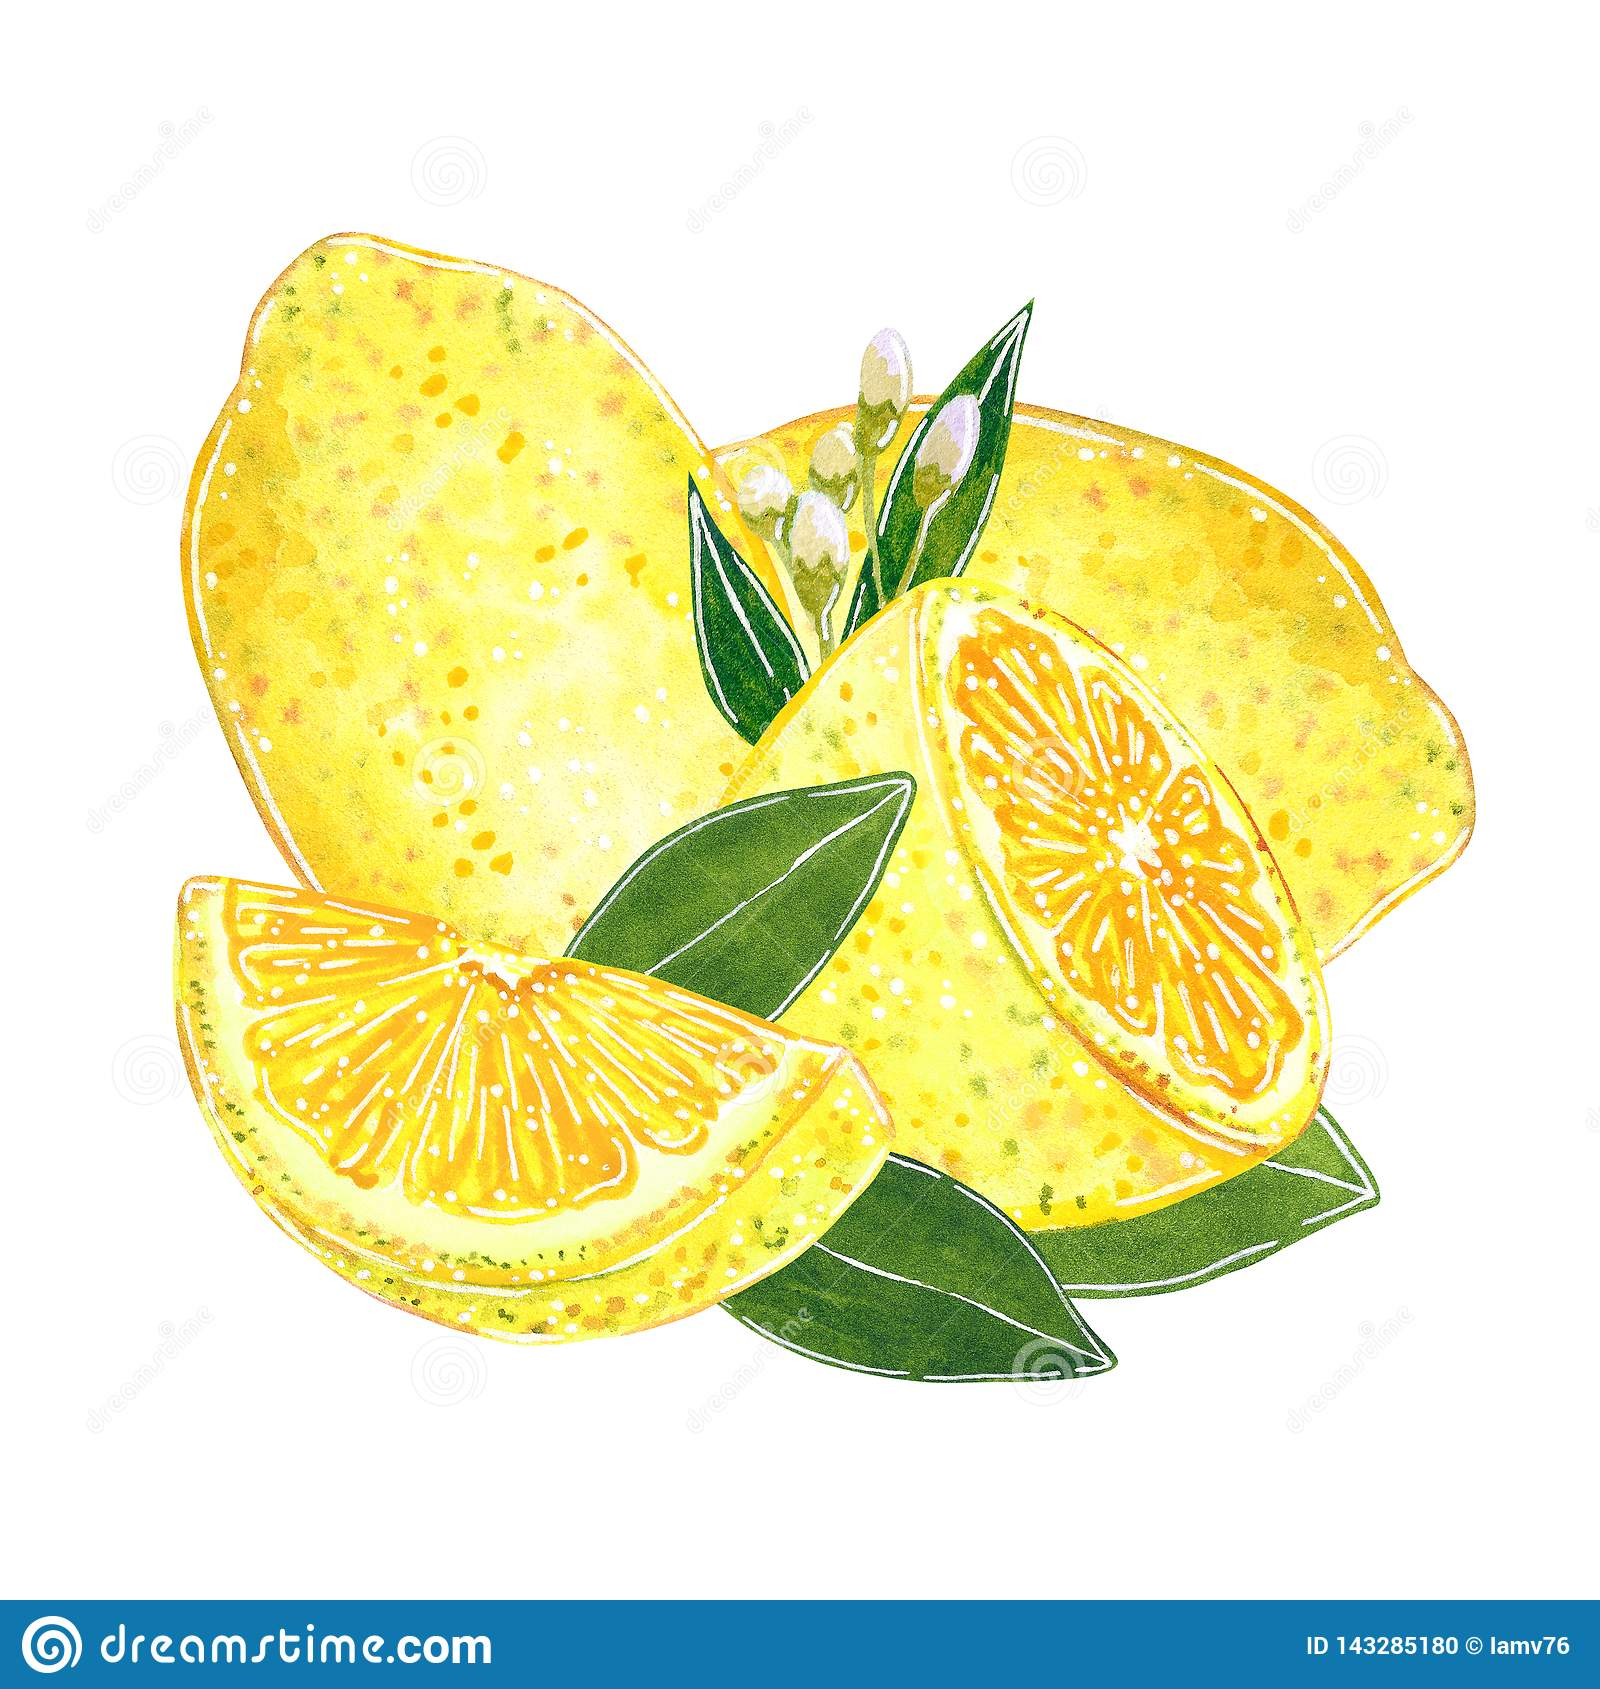 Lemons with cut slices and with leaves illustration for jam, juice, summer menu. Hand drawn watercolor illustration